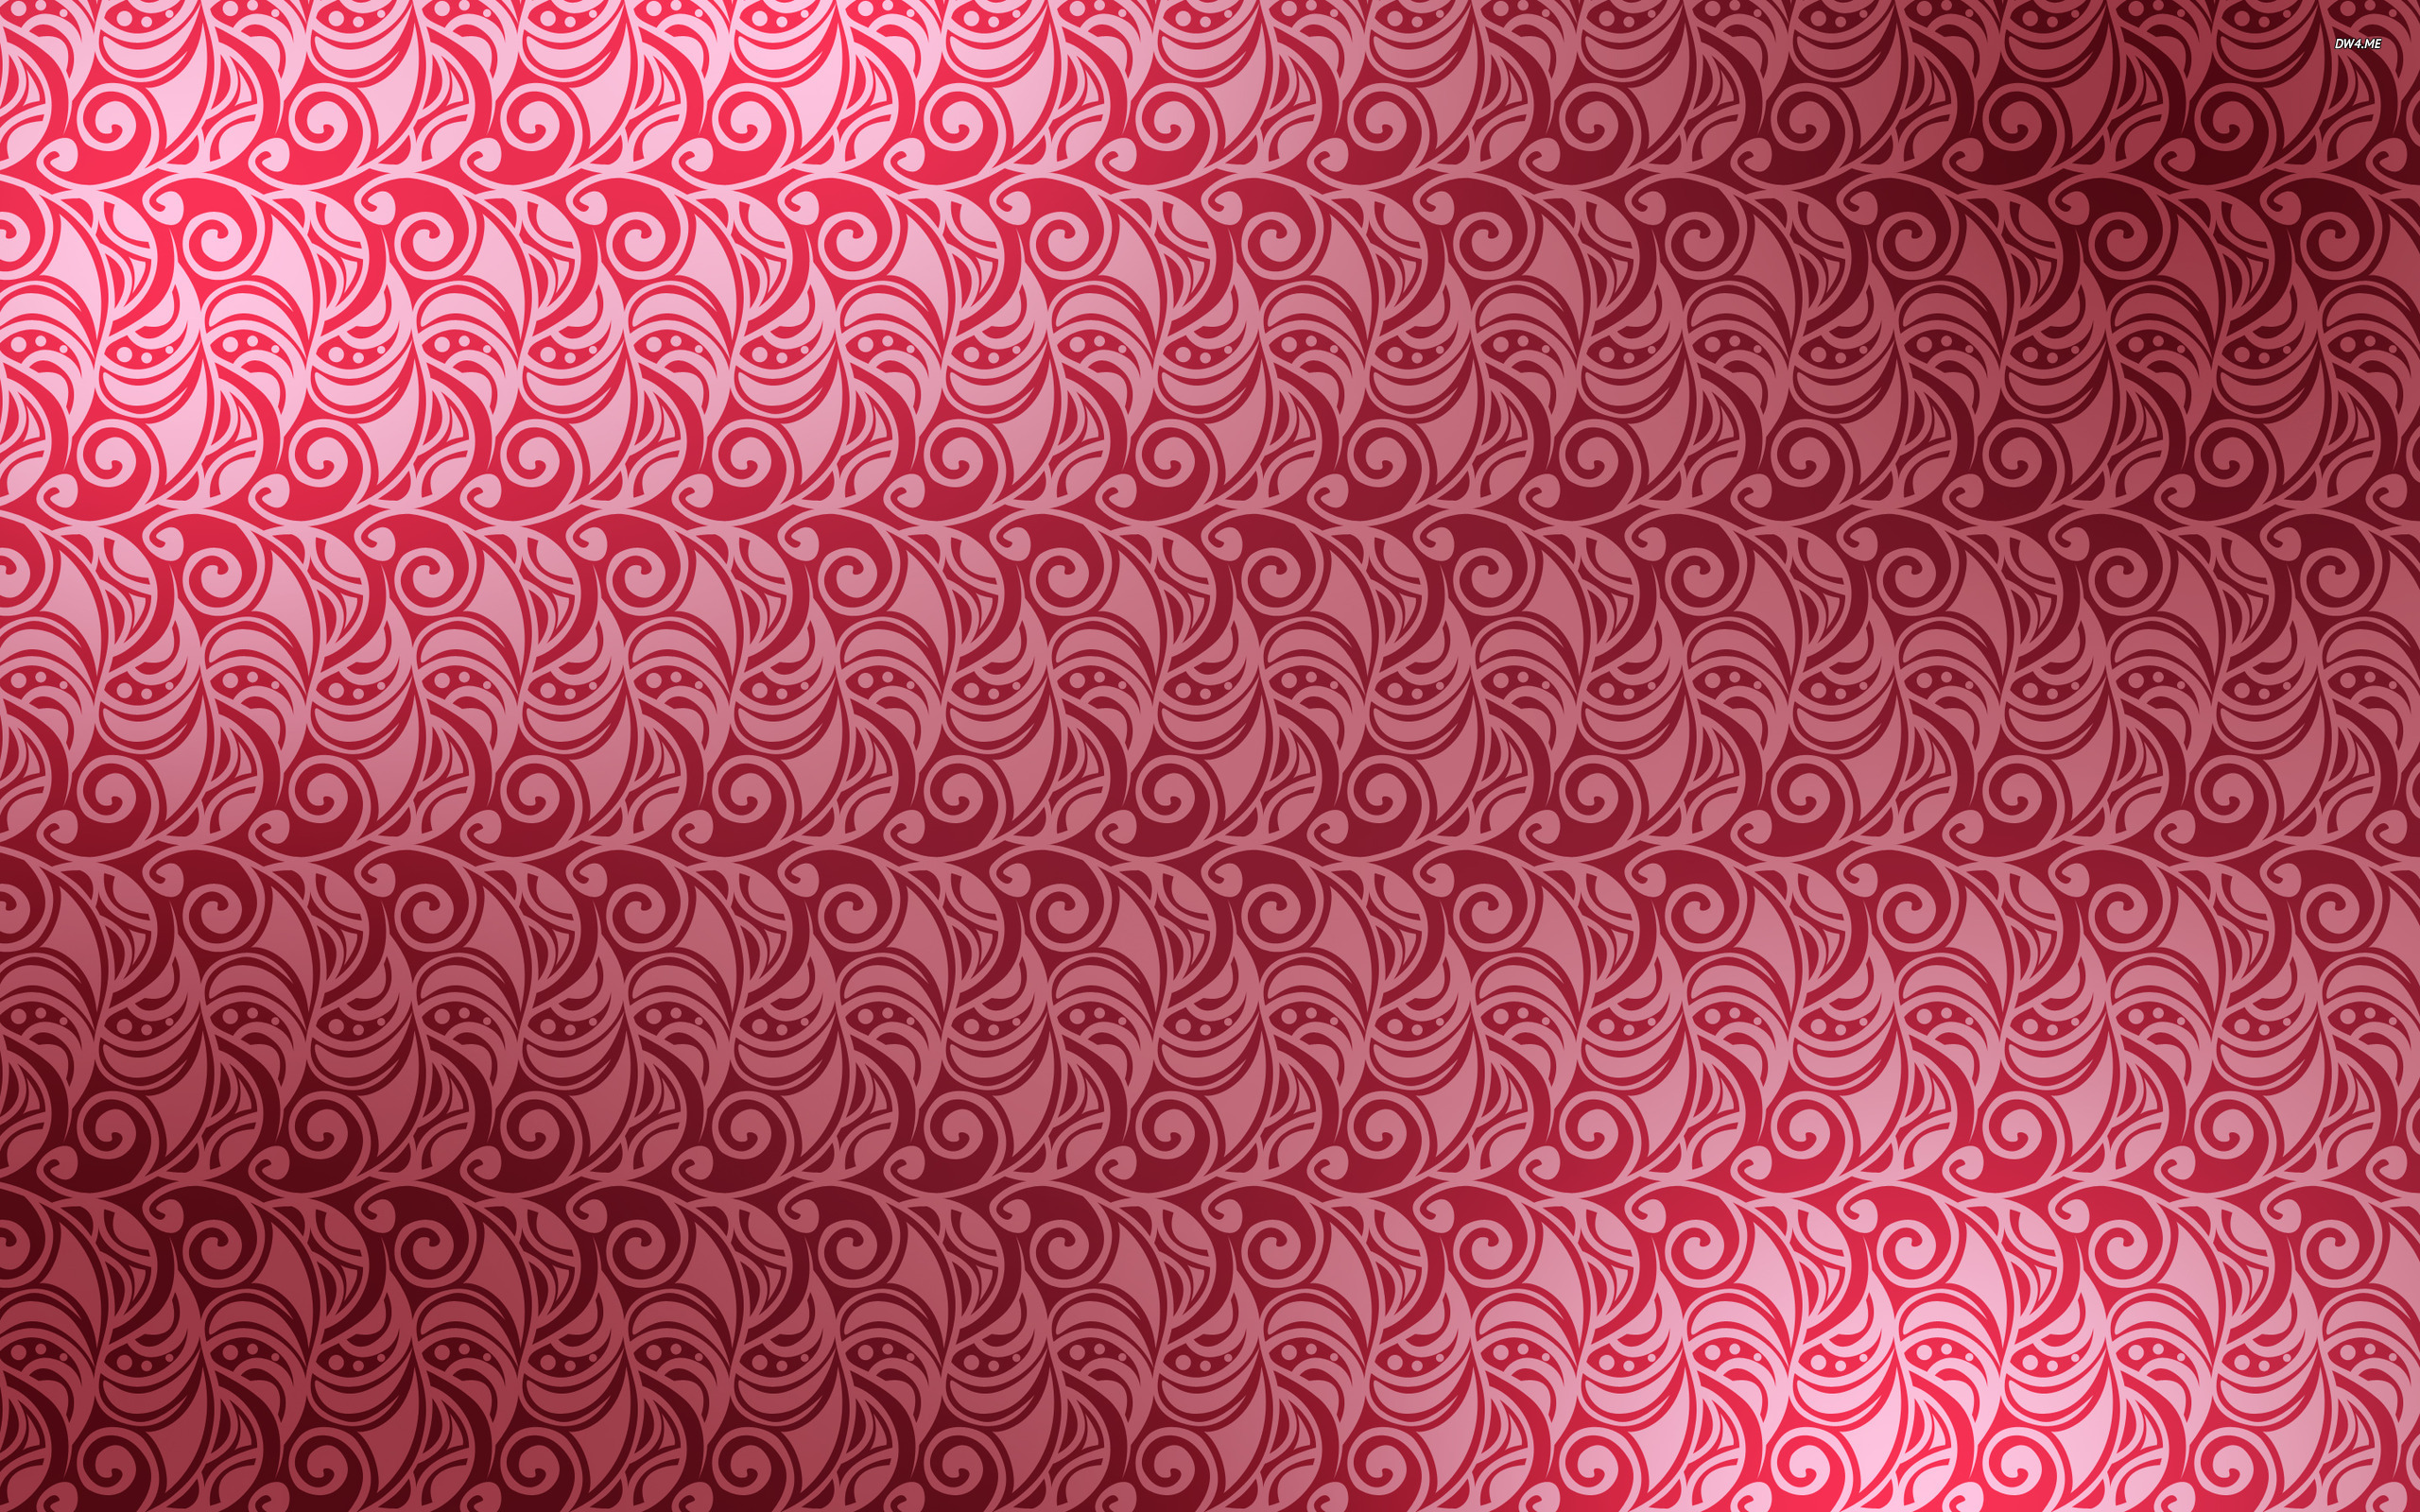 Pink Swirl Pattern Wallpaper Digital Art Wallpapers 2560x1600px